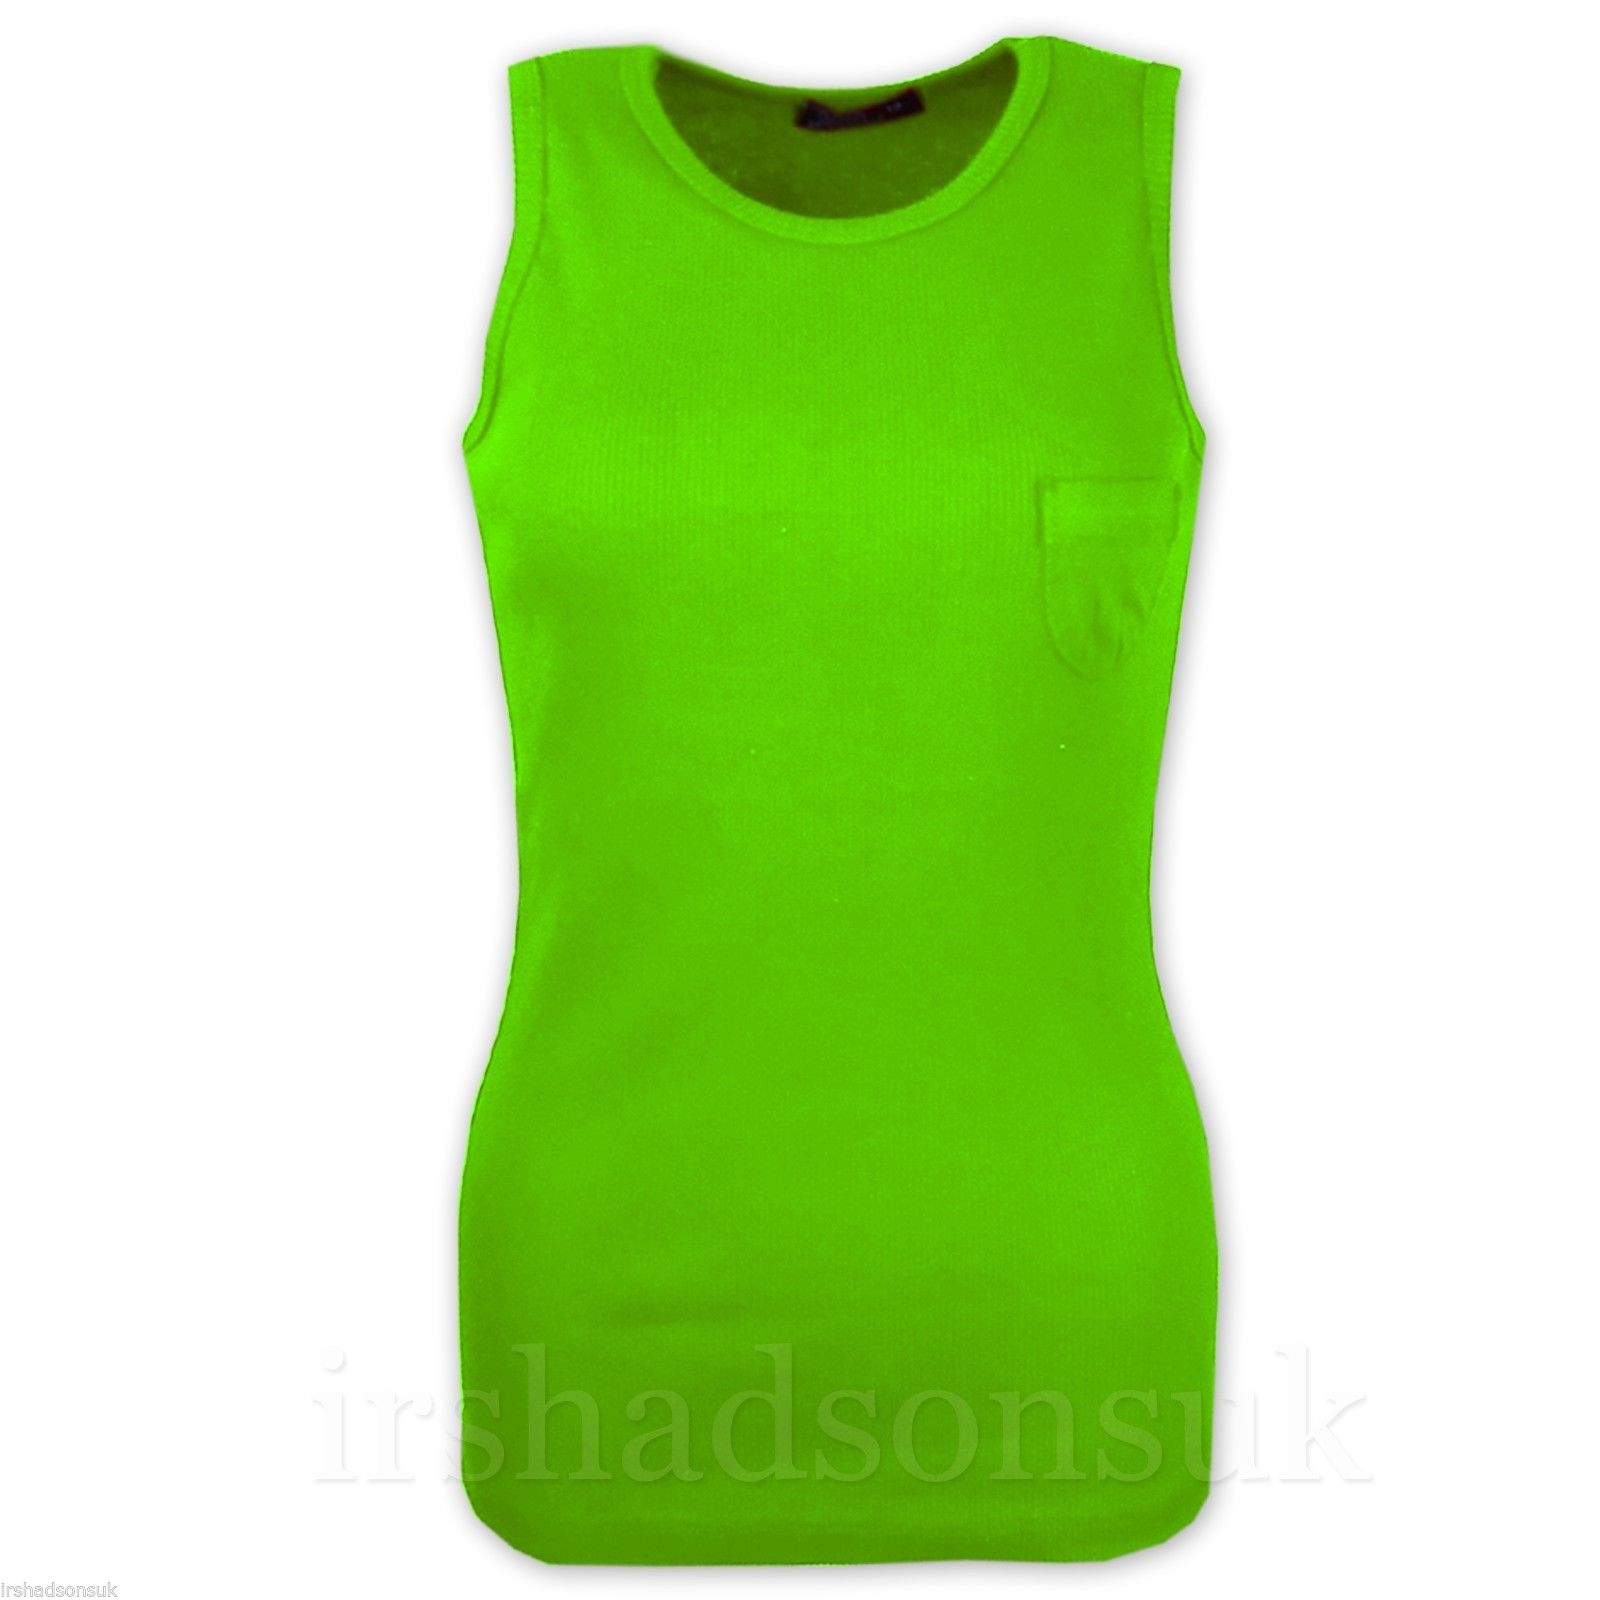 Kids-Girls-Ribbed-Vest-Top-100-Cotton-Summer-T-Shirt-5-6-7-8-9-10-11-12-13-Year